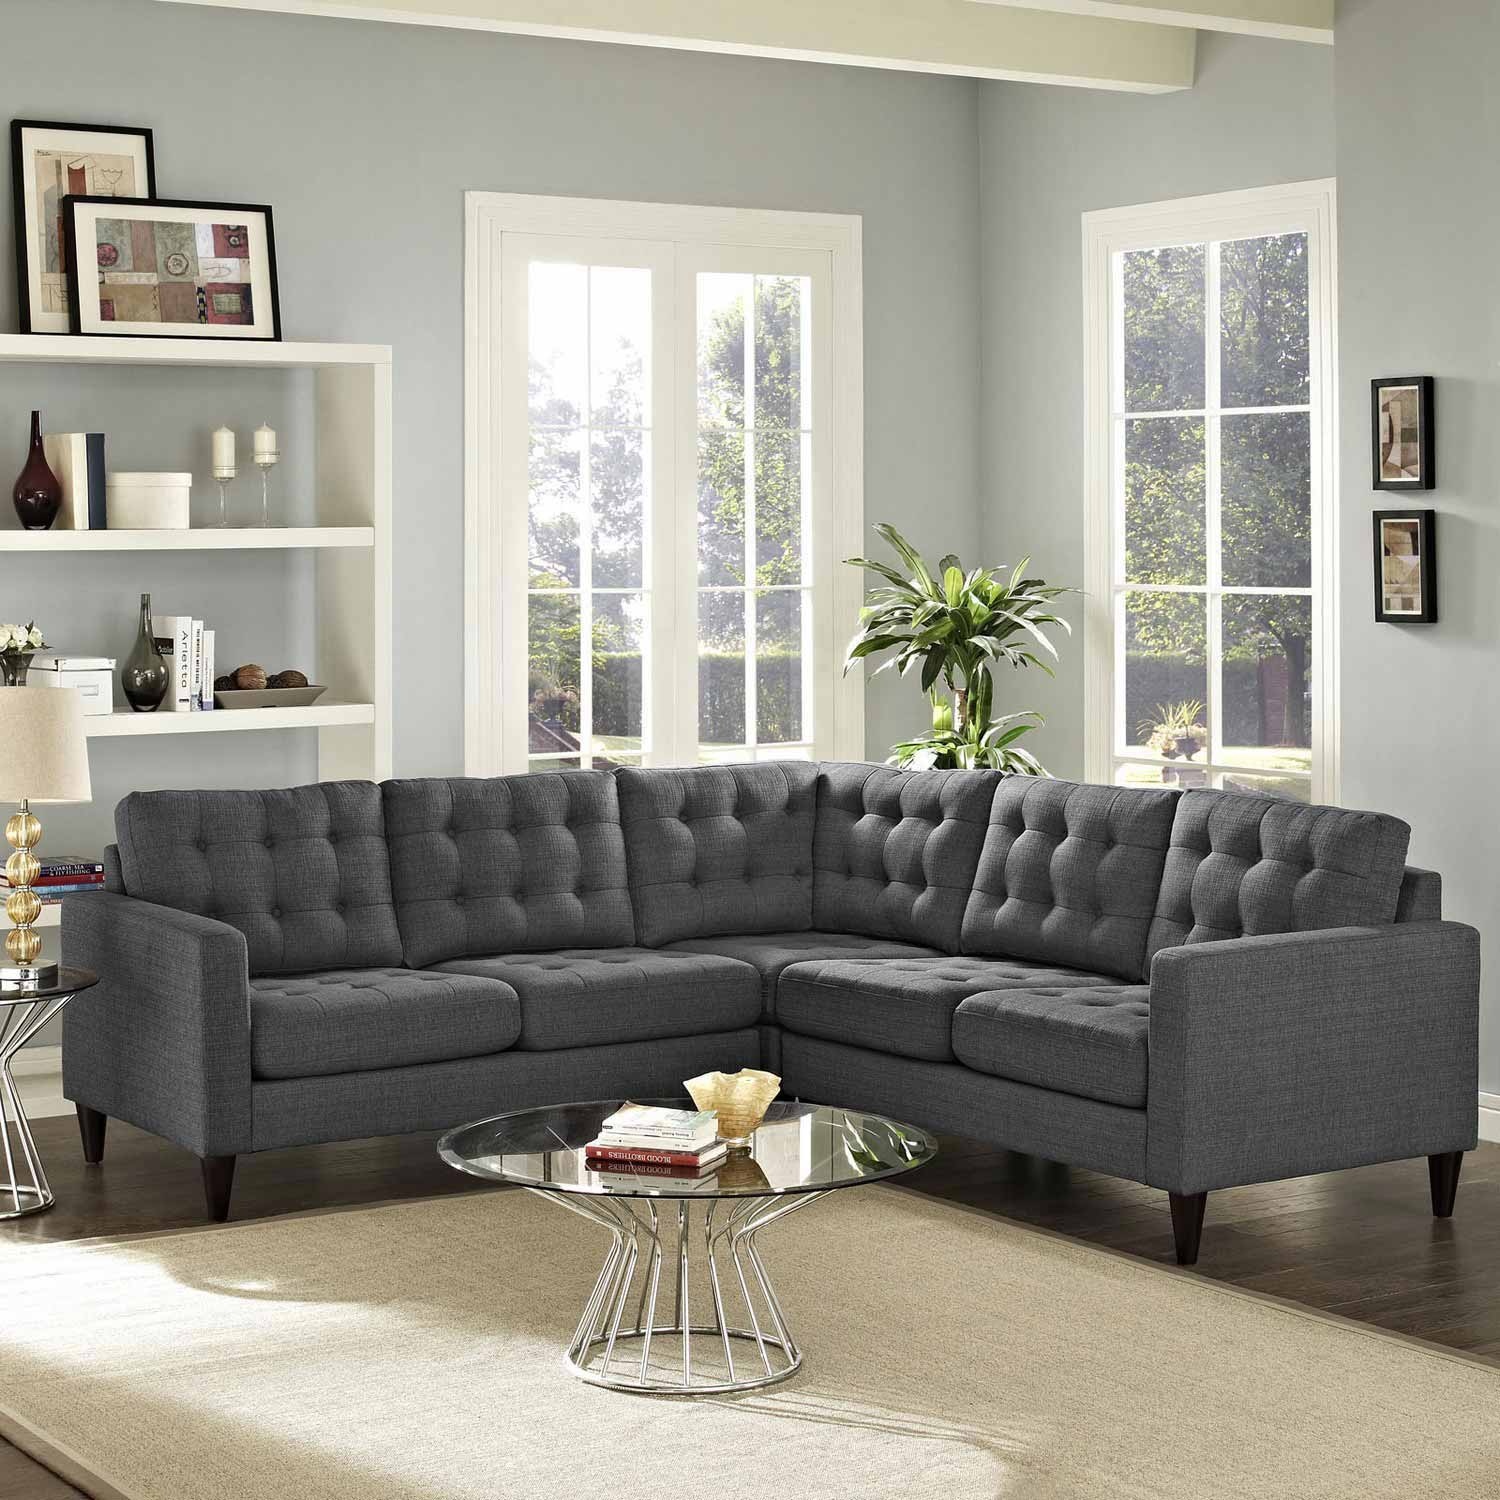 Modway Empress 3 Piece Fabric Sectional Sofa Set - Gray